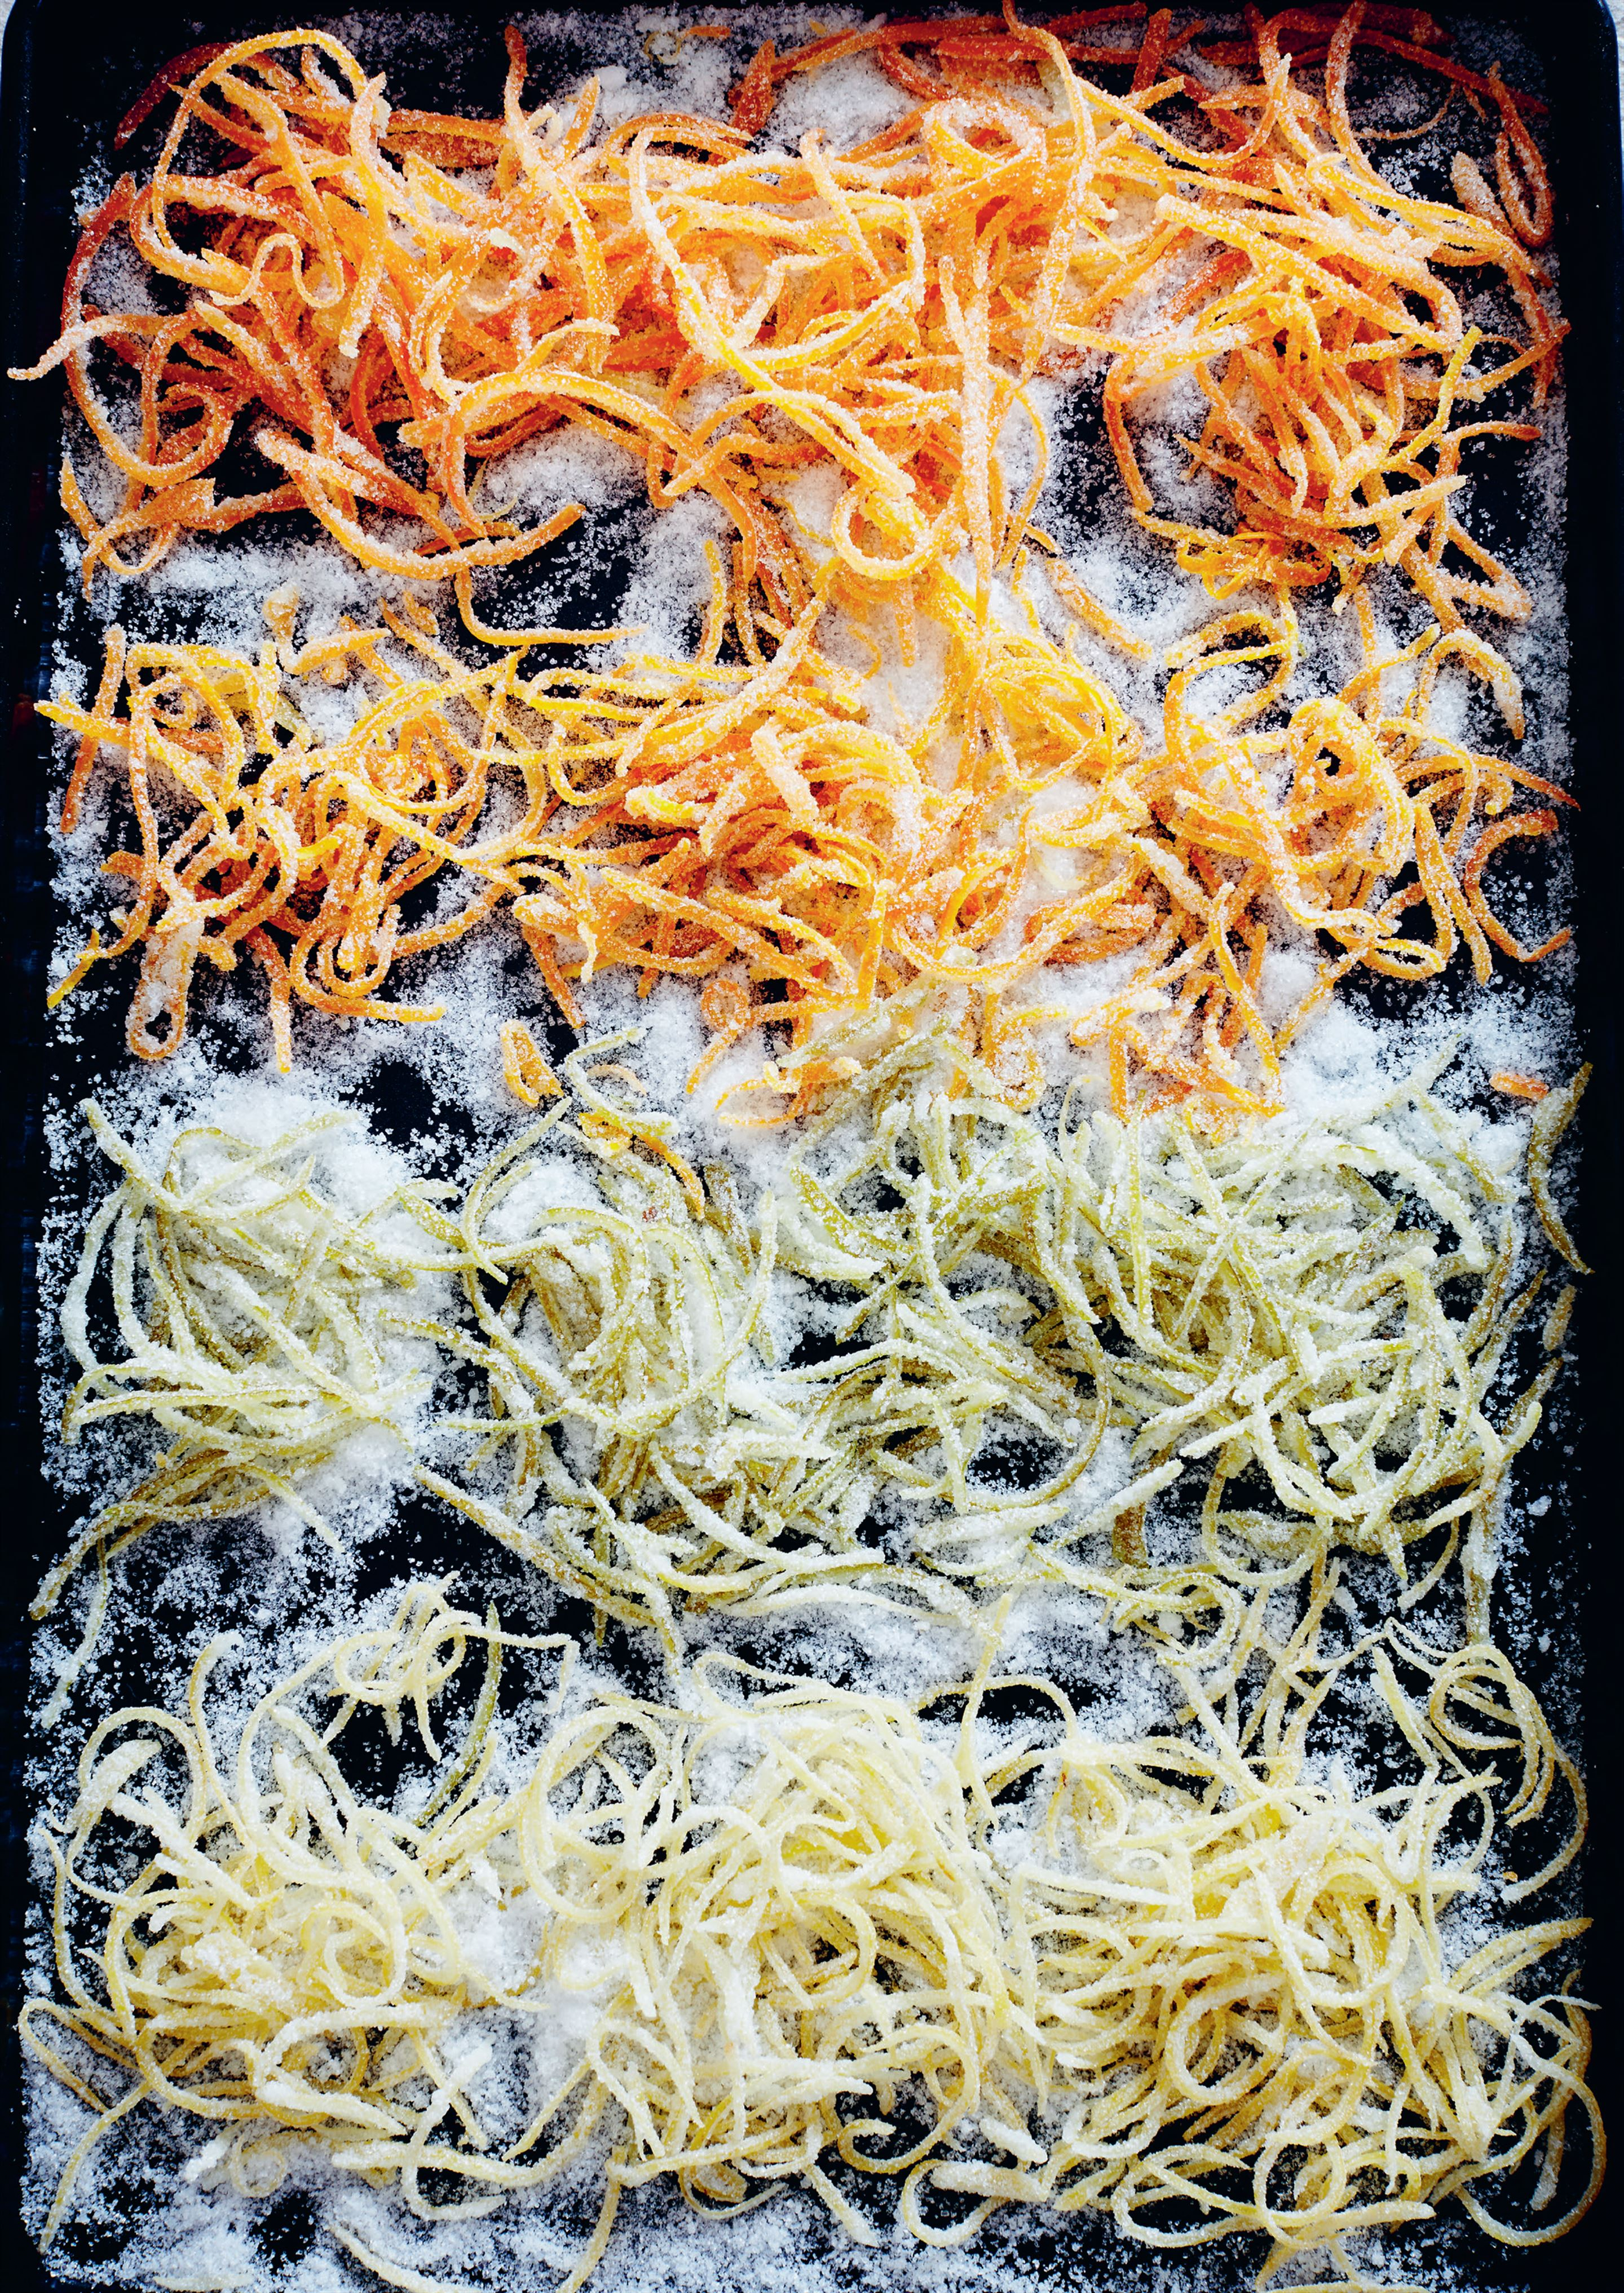 Candied citrus zest